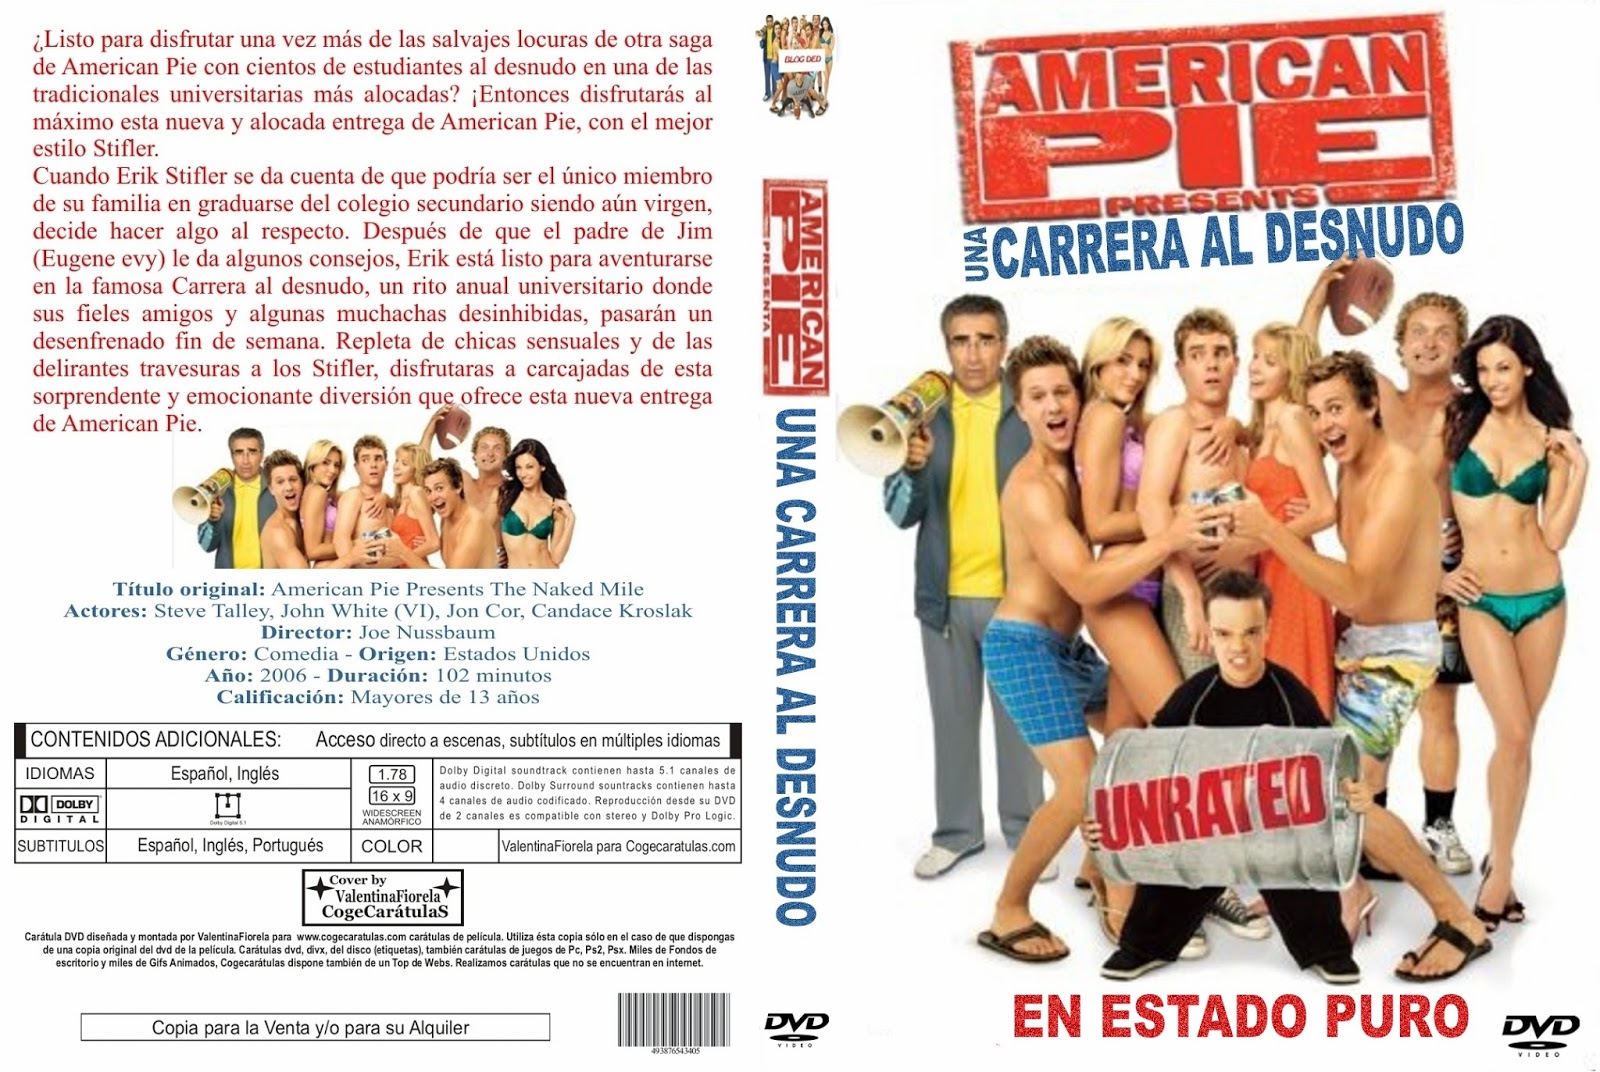 American pie naked mile soundtrack old aunty sex